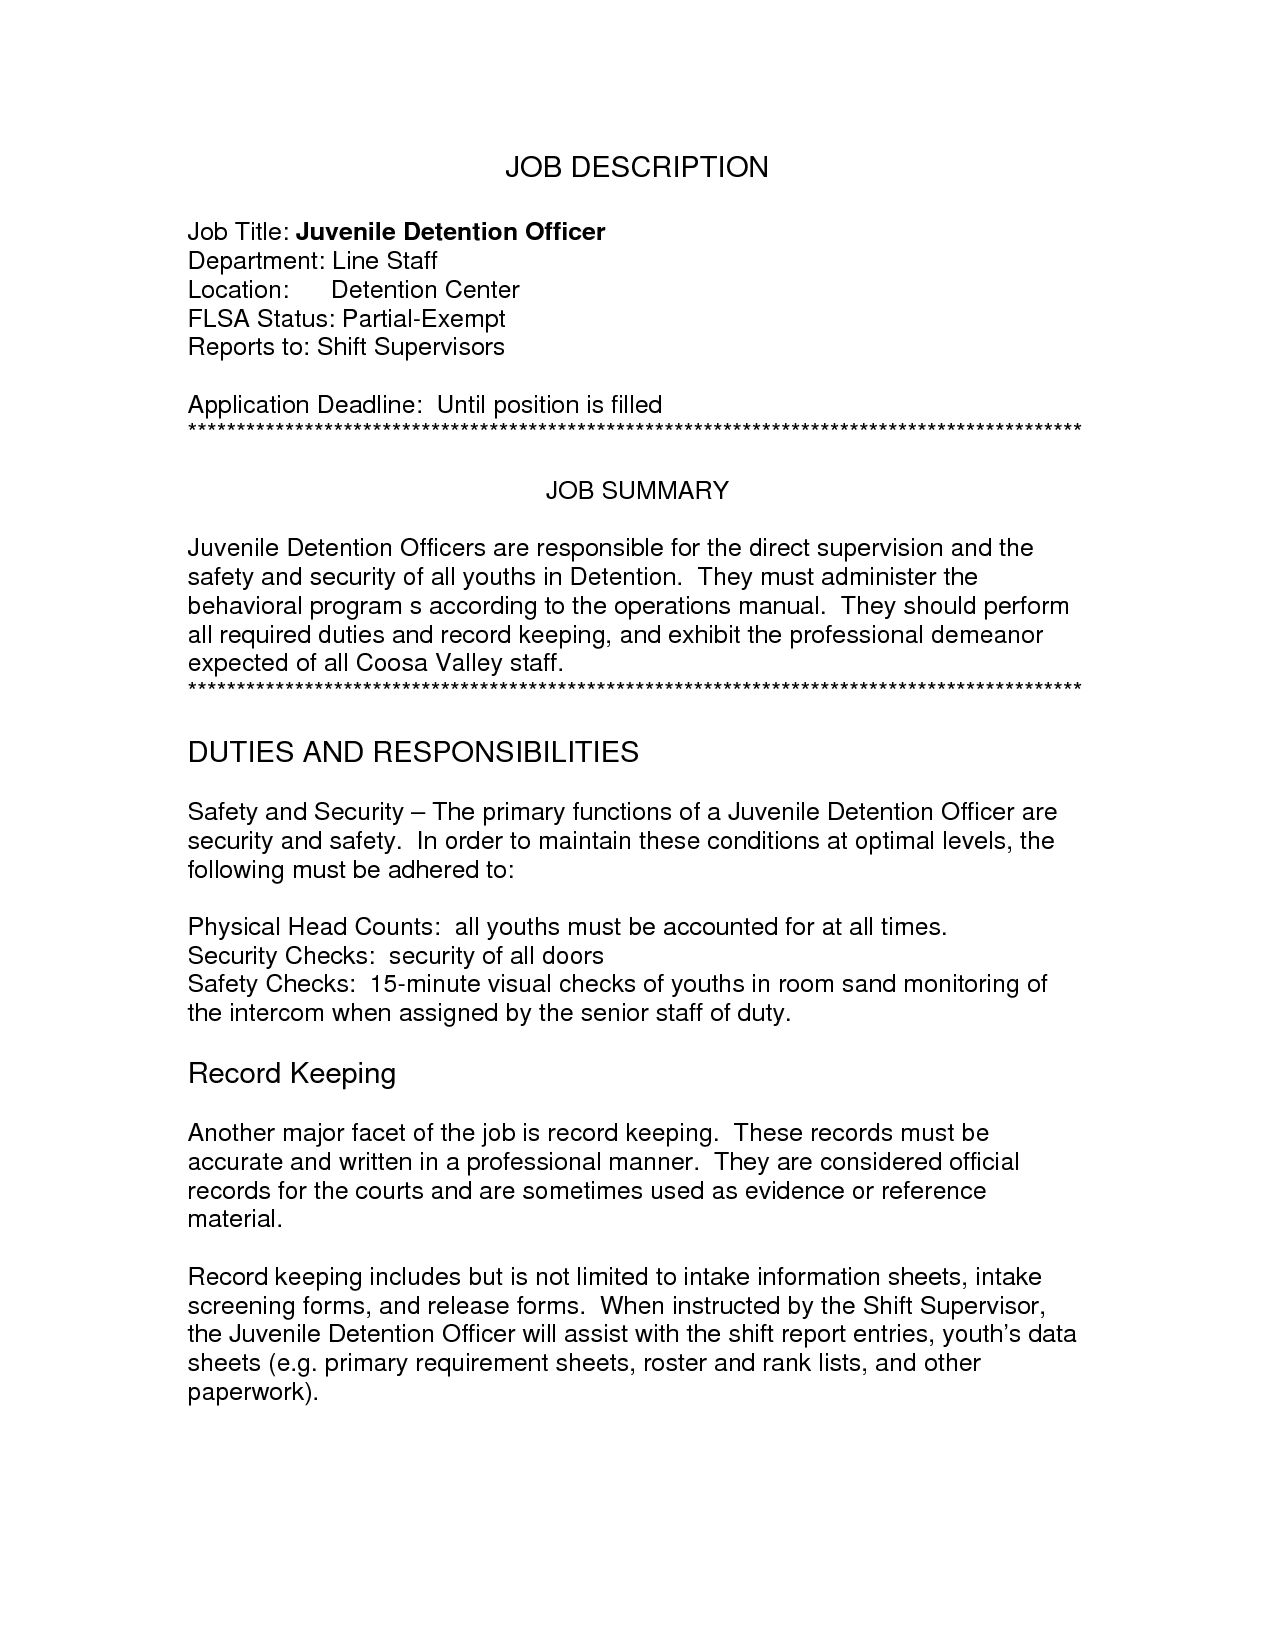 Juvenile Detention Officer Resume Objective  HttpWww